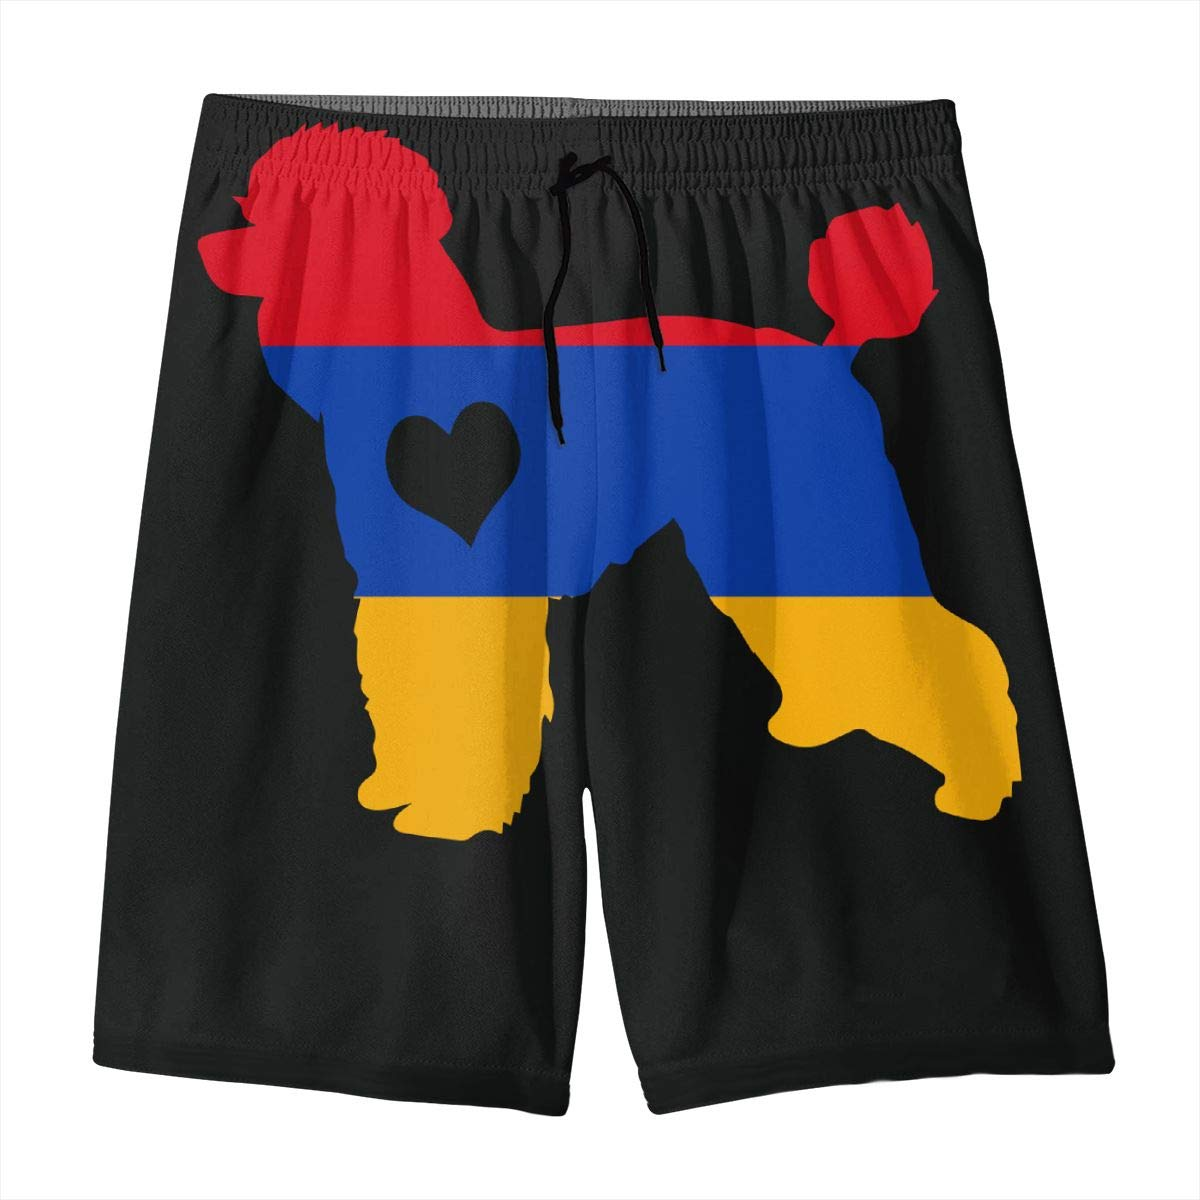 PANTRJ416 Poodle Dog Heart Armenia Flag Teen Swimwear Bathing Suits Quick Dry with Side Pockets